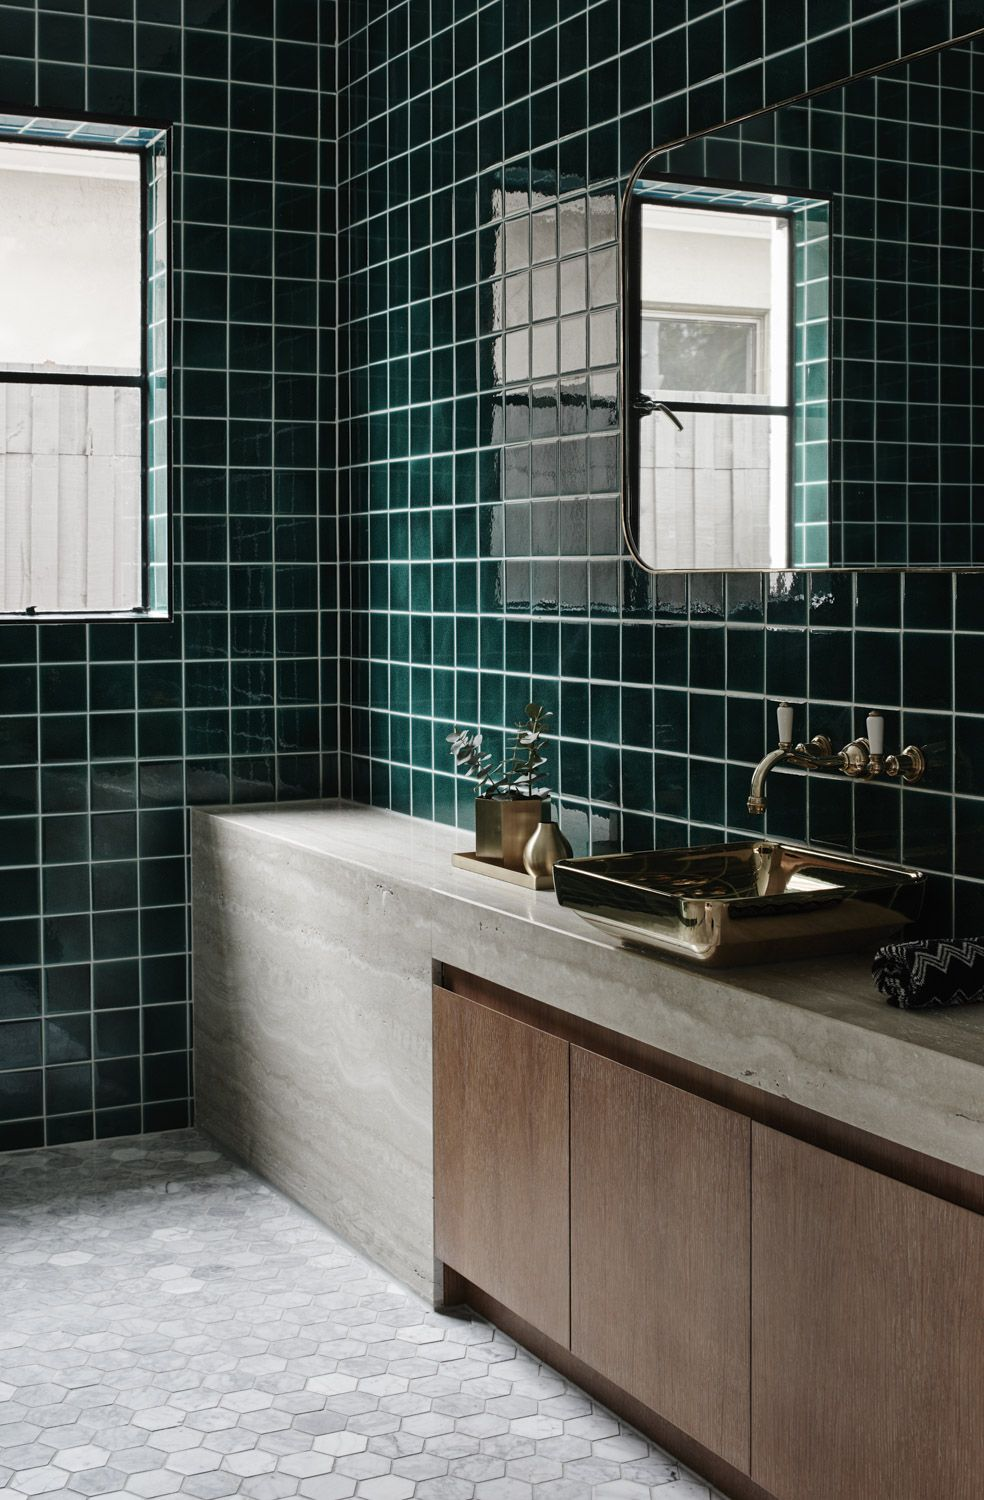 brighton house techne my kind of rural chic pinterest rh pinterest com Ming Green Marble Tile Green Marble Porcelain Tiles